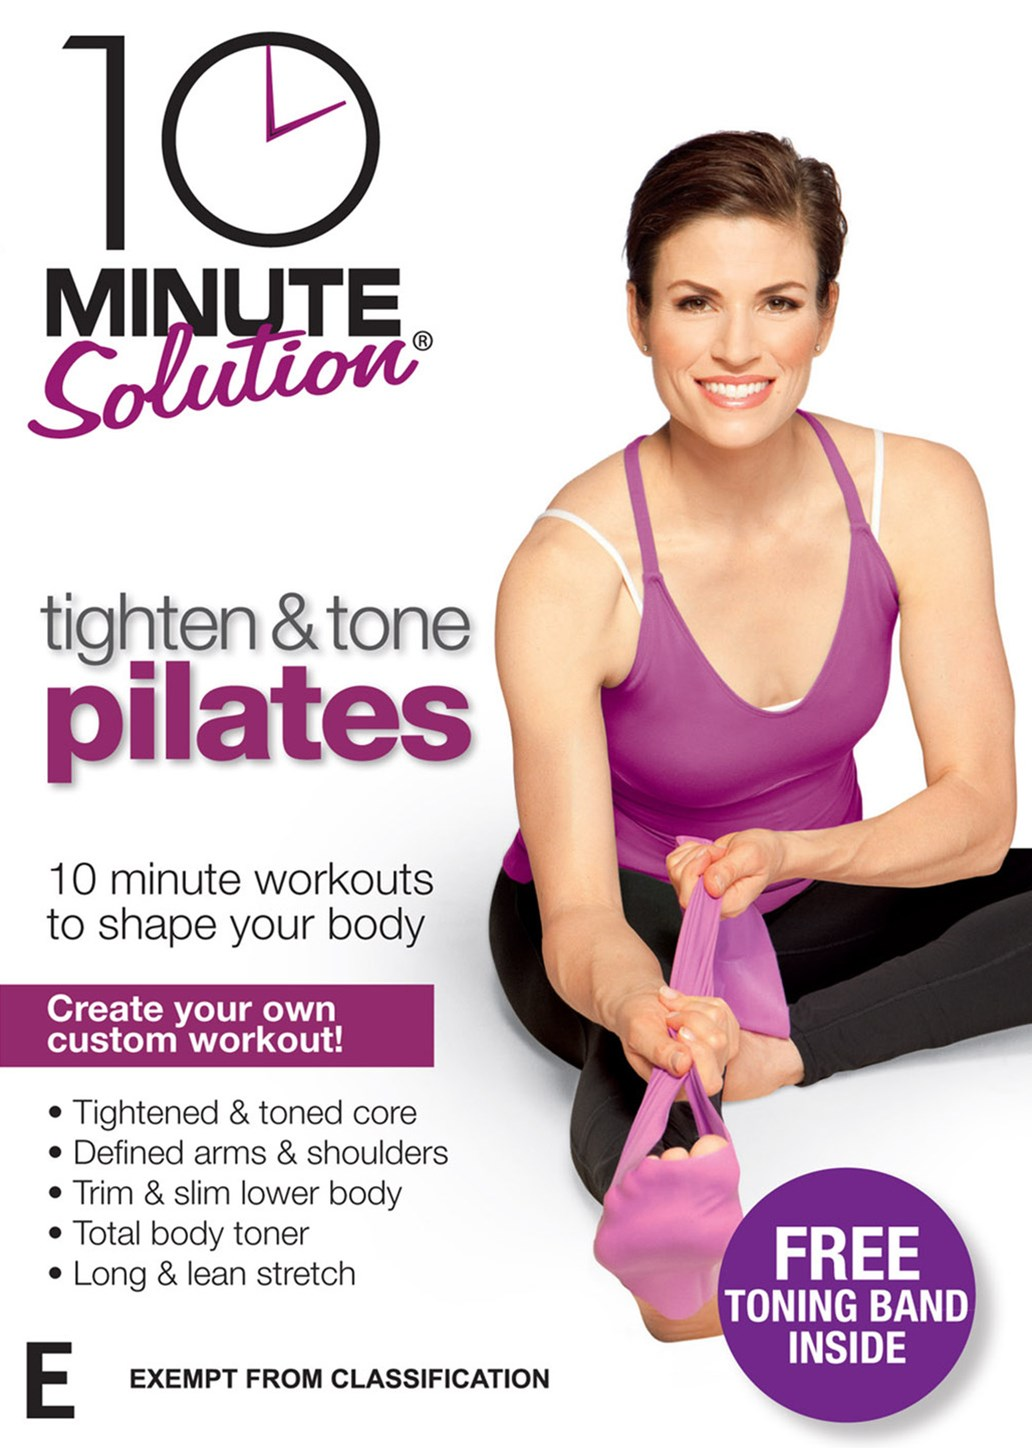 10 Minute Solution: Tighten and Tone Pilates with band